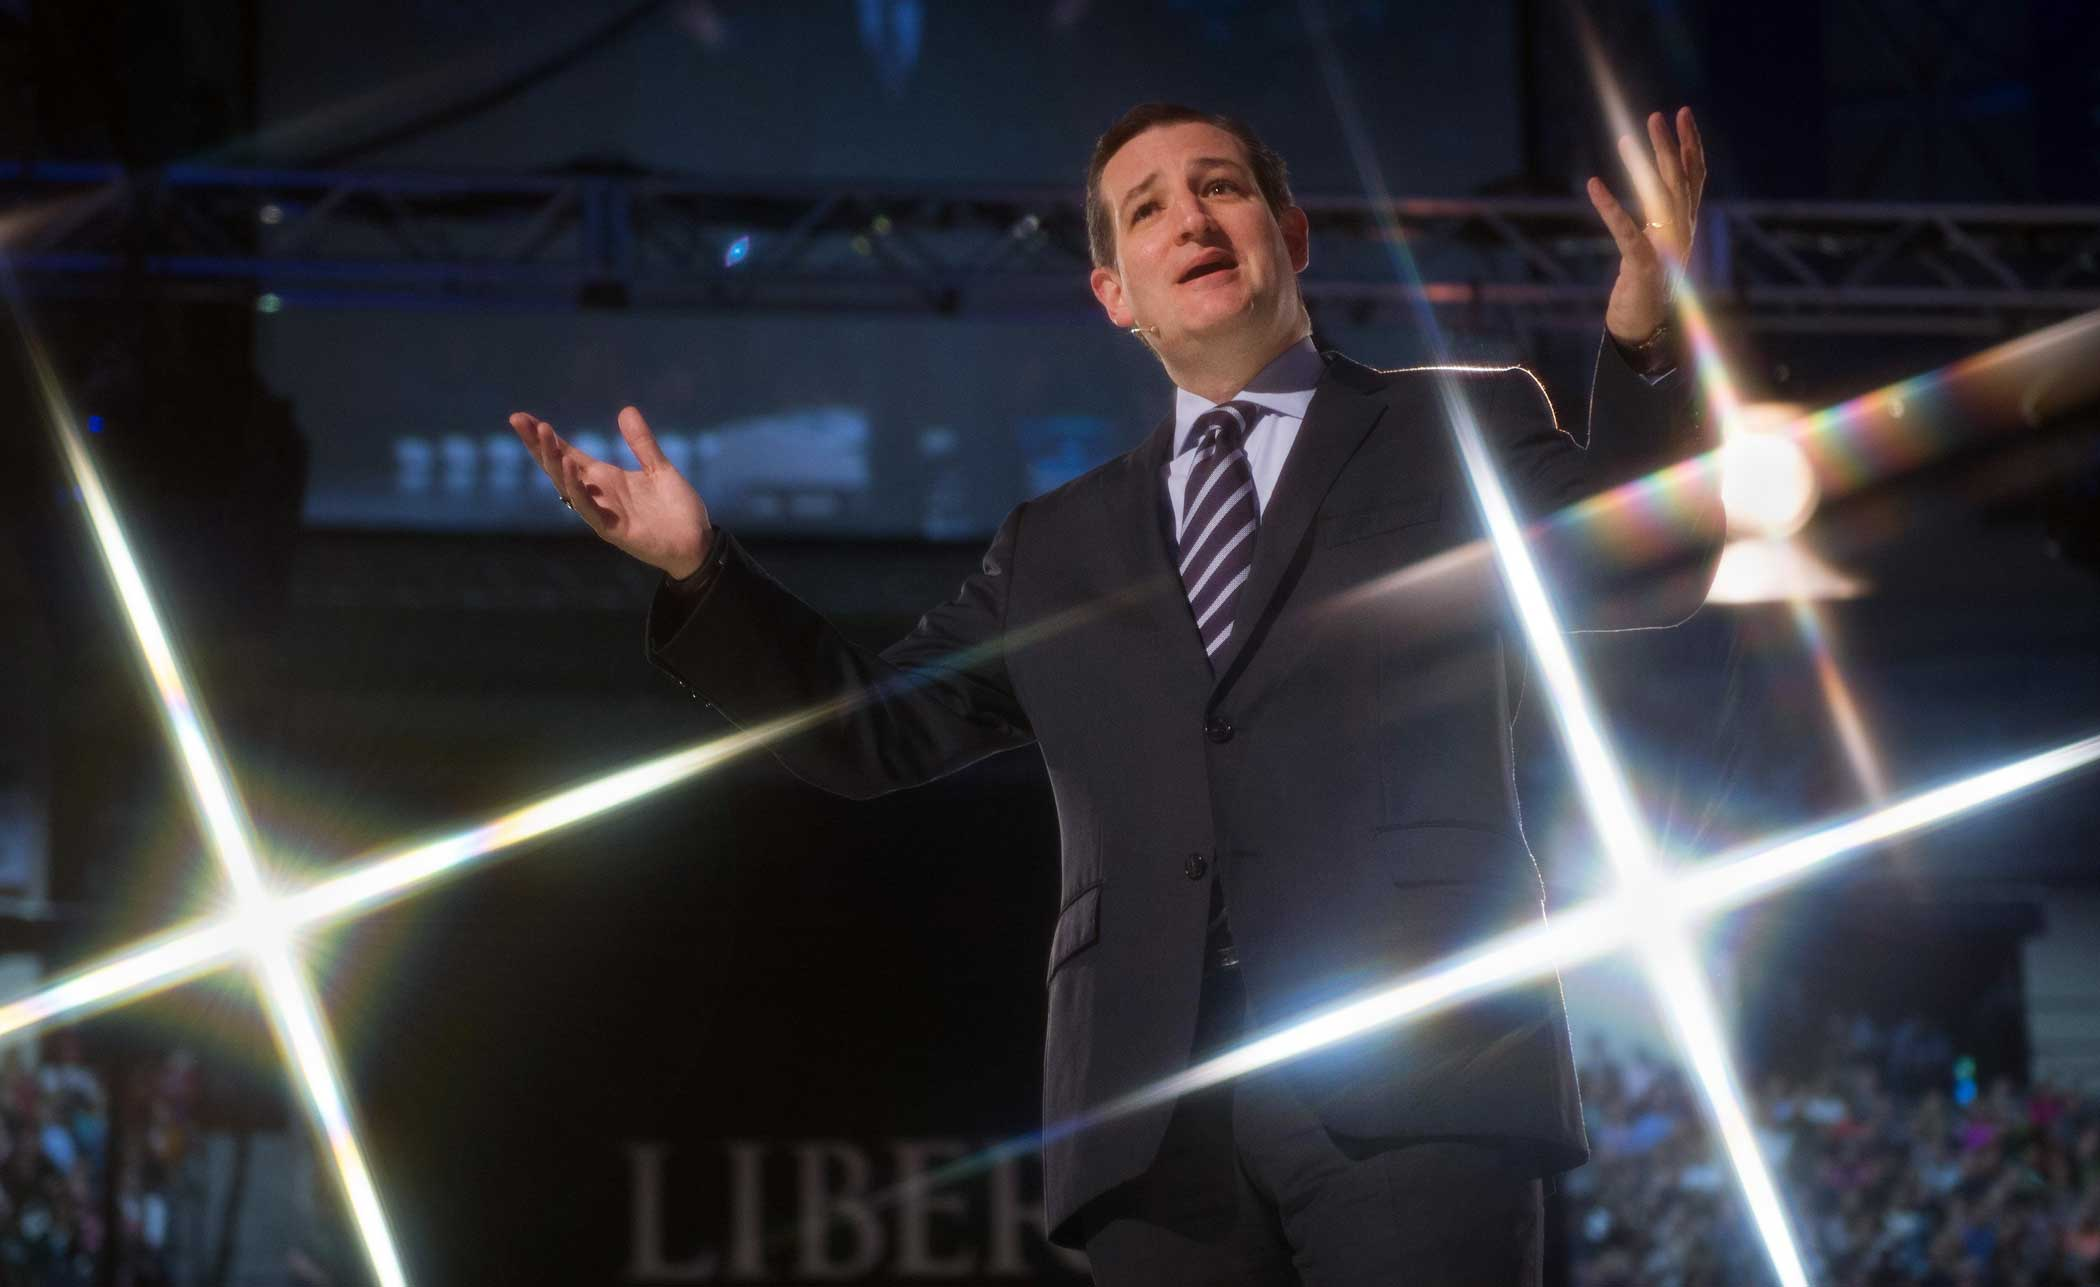 Senator Ted Cruz (R-TX) delivers remarks before announcing his candidacy for the Republican nomination to run for president on March 23, 2015, at Liberty University, in Lynchburg, Virginia.